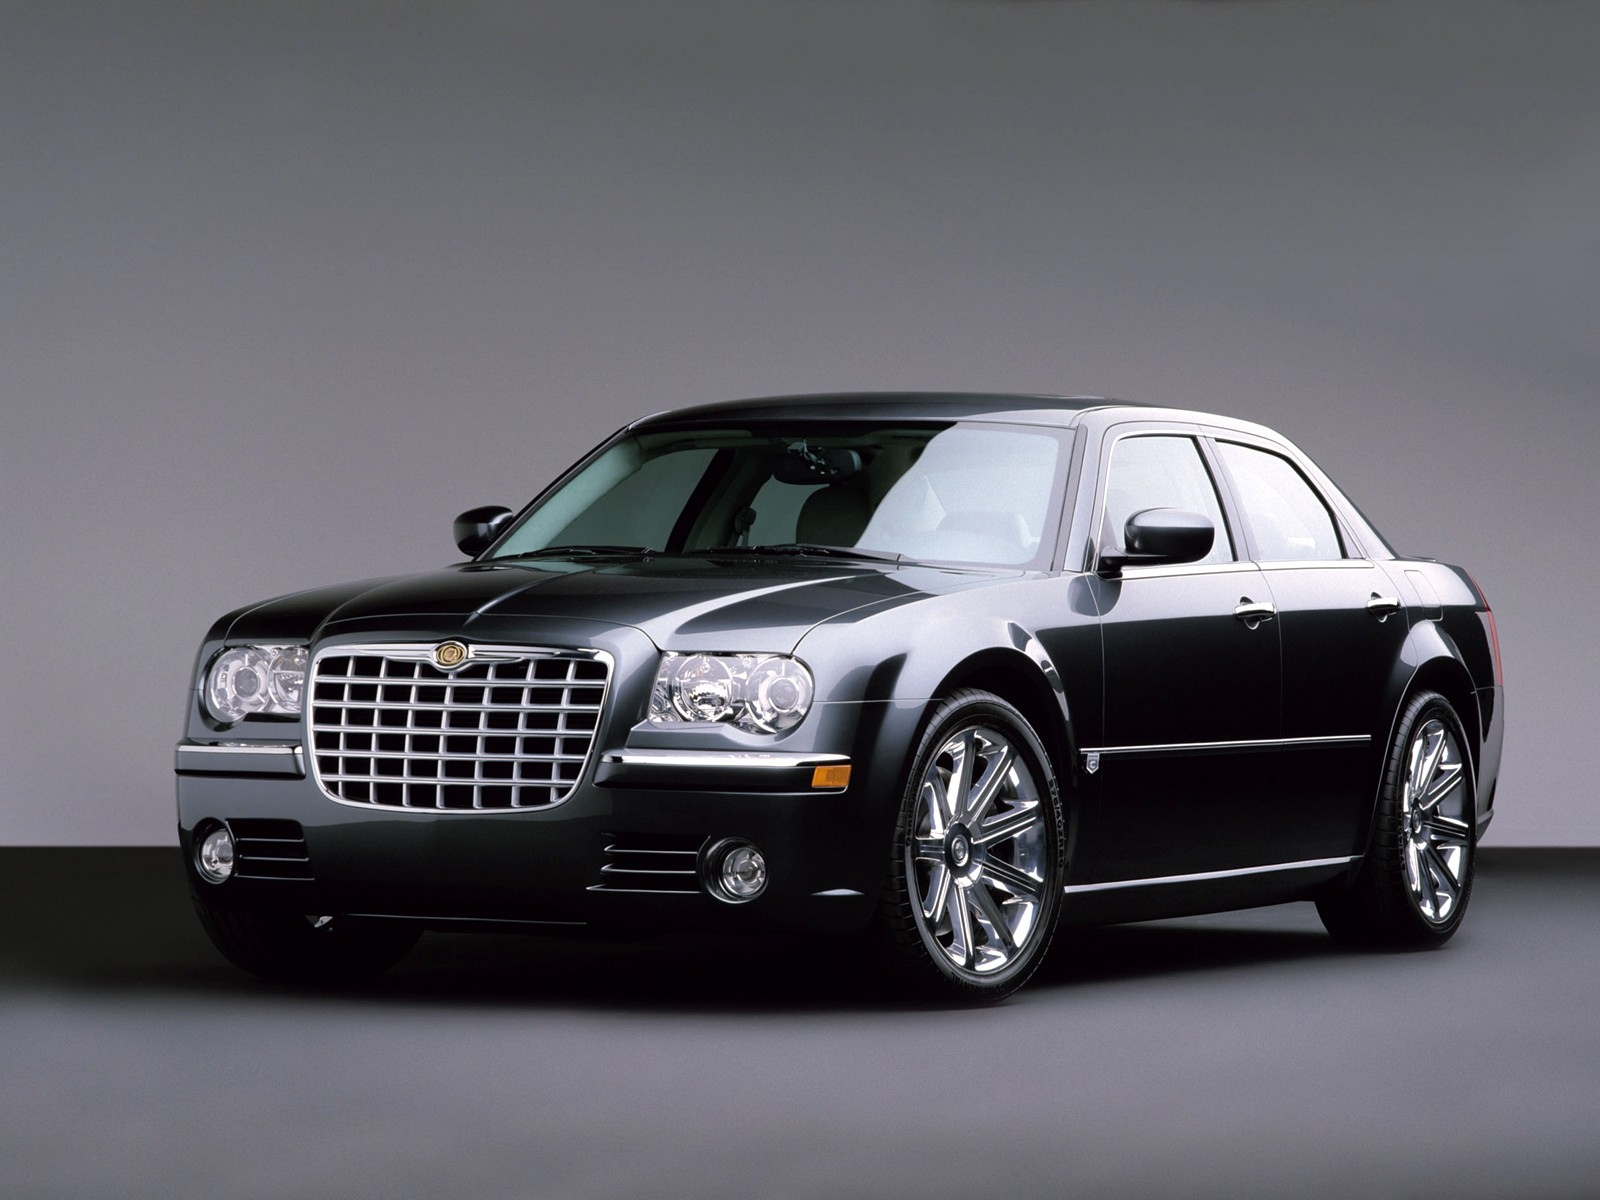 chrysler 300c #0